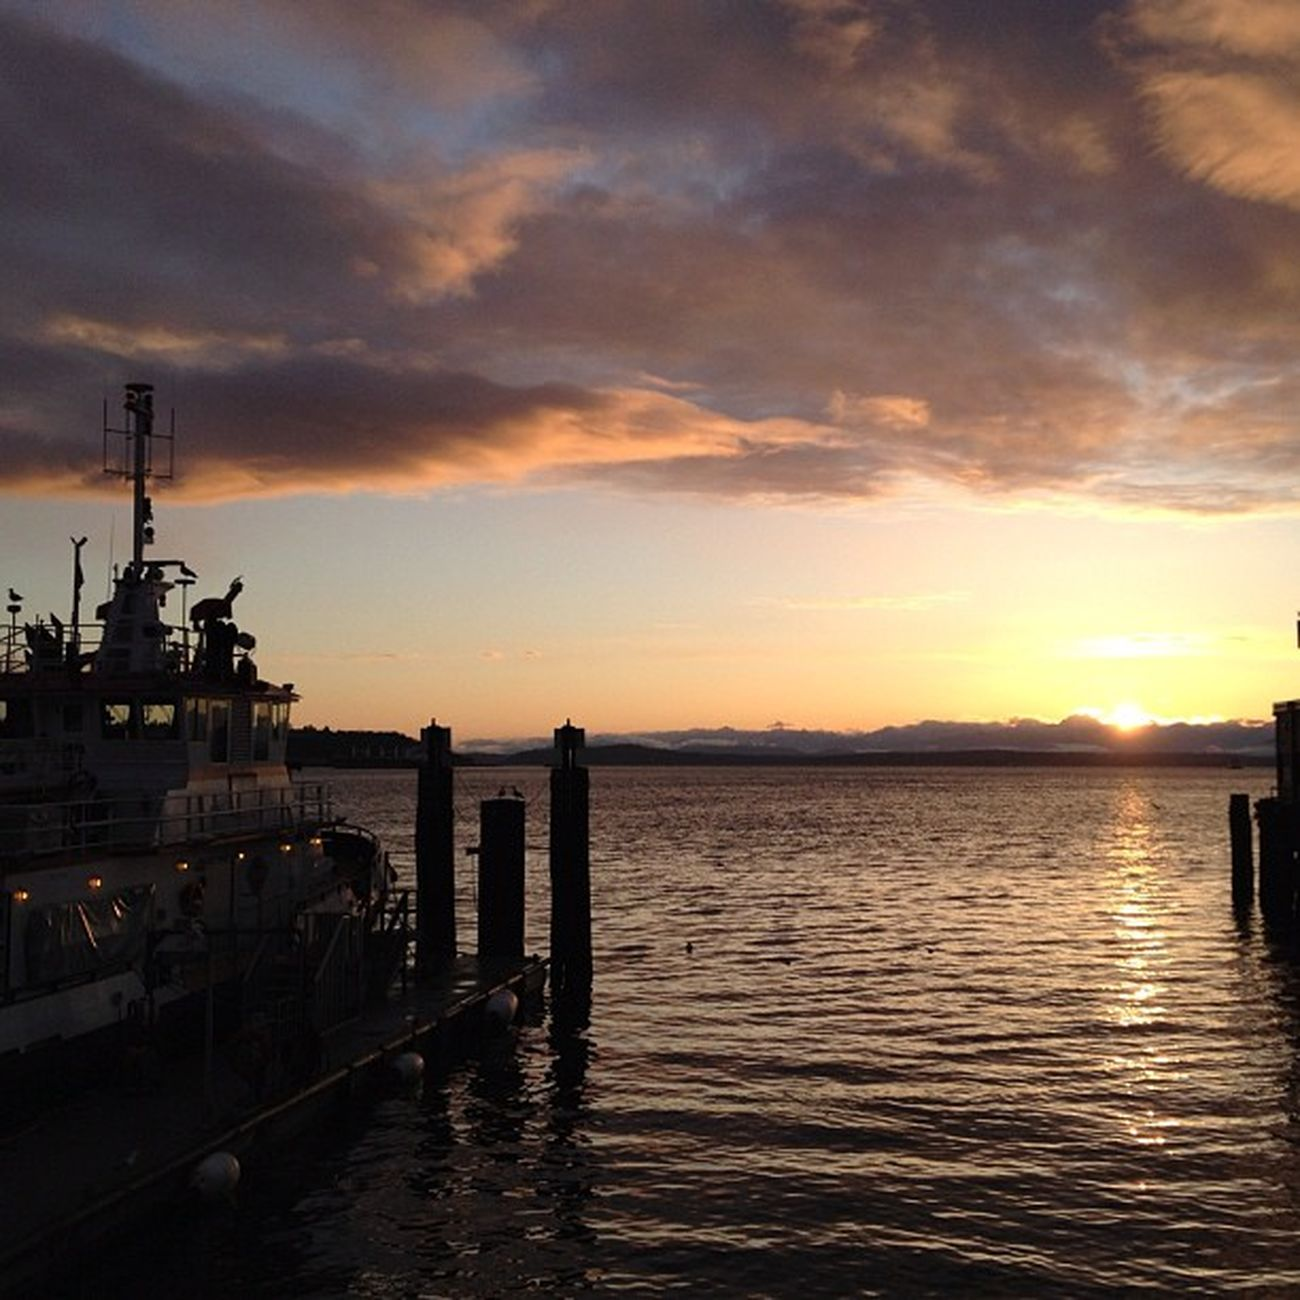 Another Seattle sunset. Nofilter